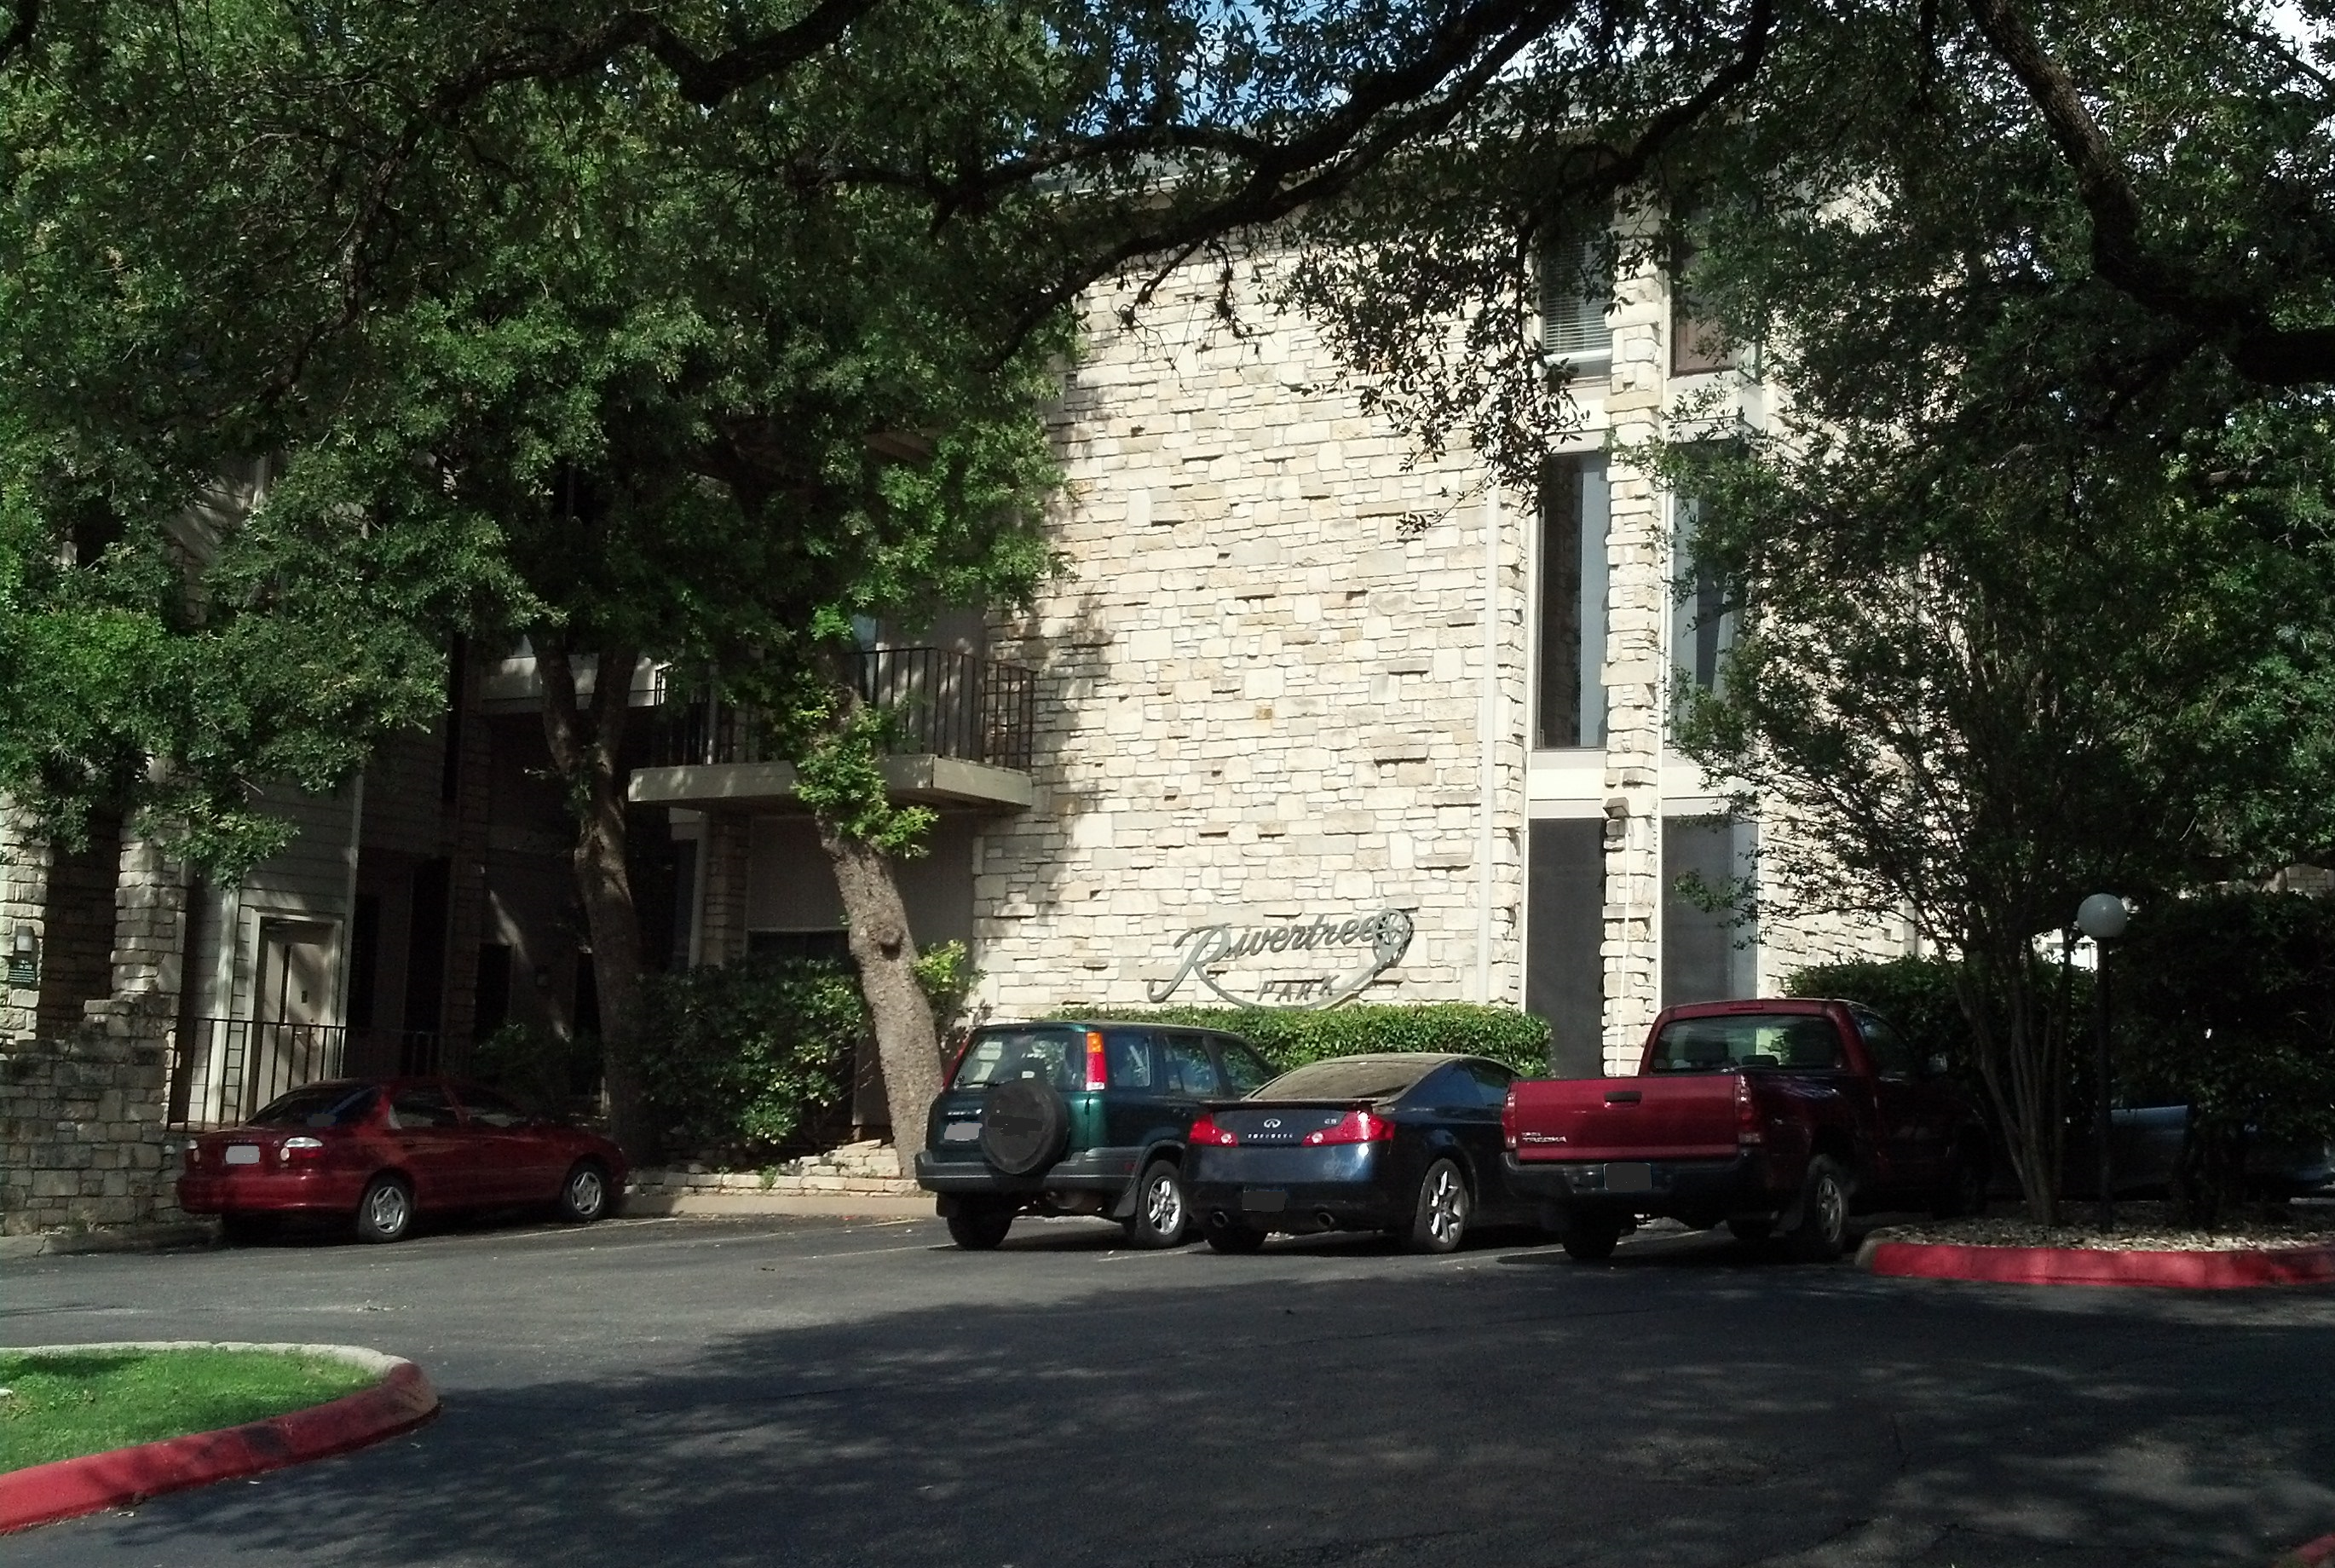 3625 Manchaca Road, Suite 102 Austin, Texas 78704